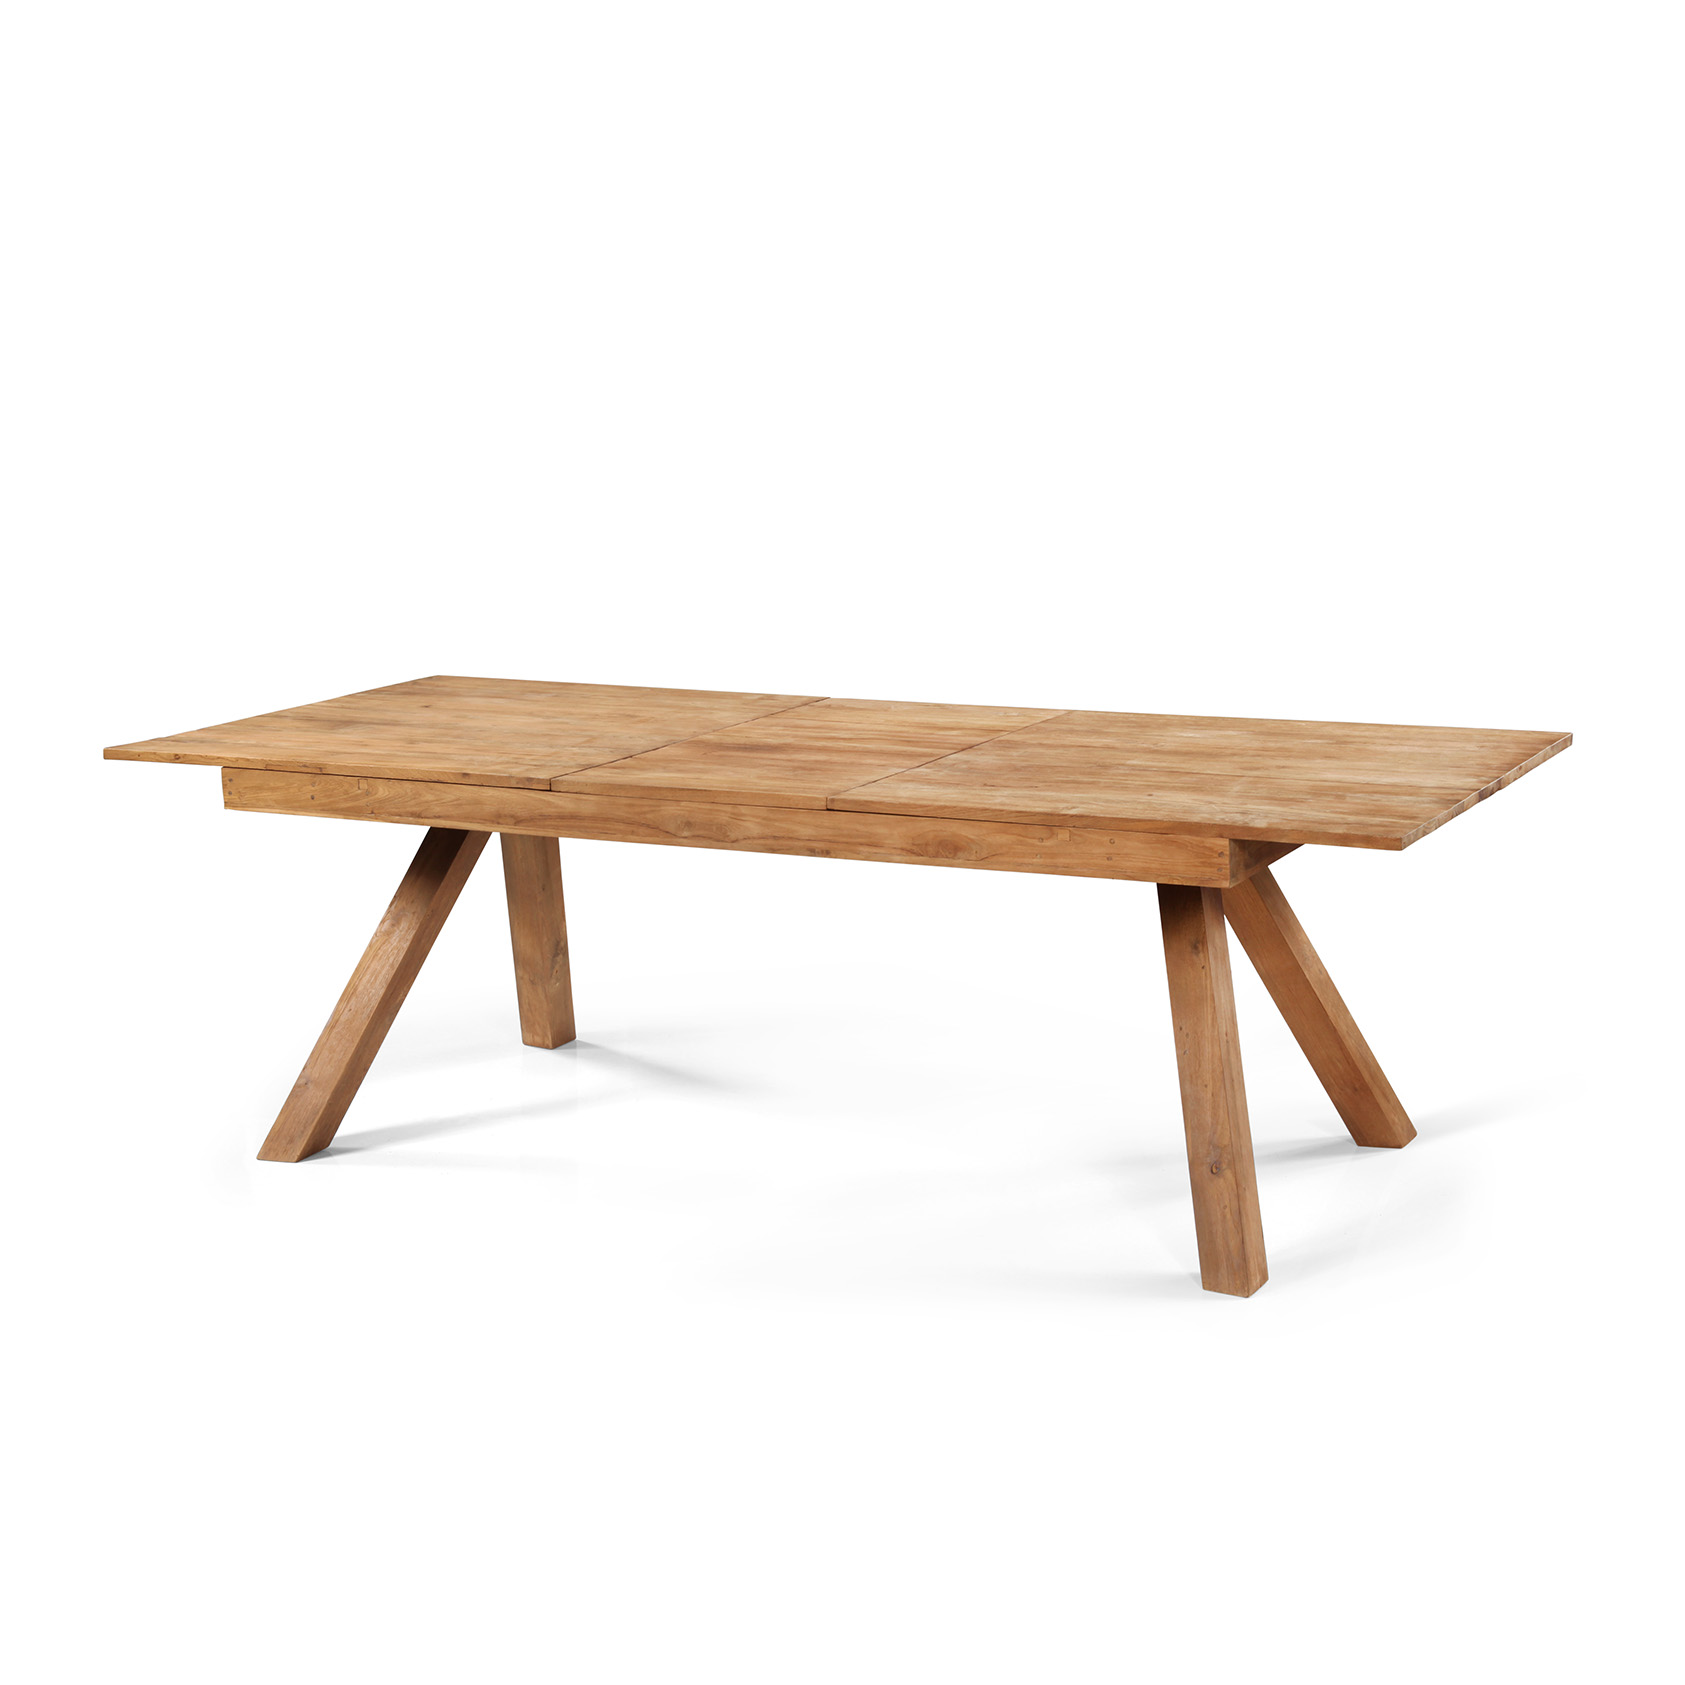 Table a manger en teck maison design for Salle a manger table en teck